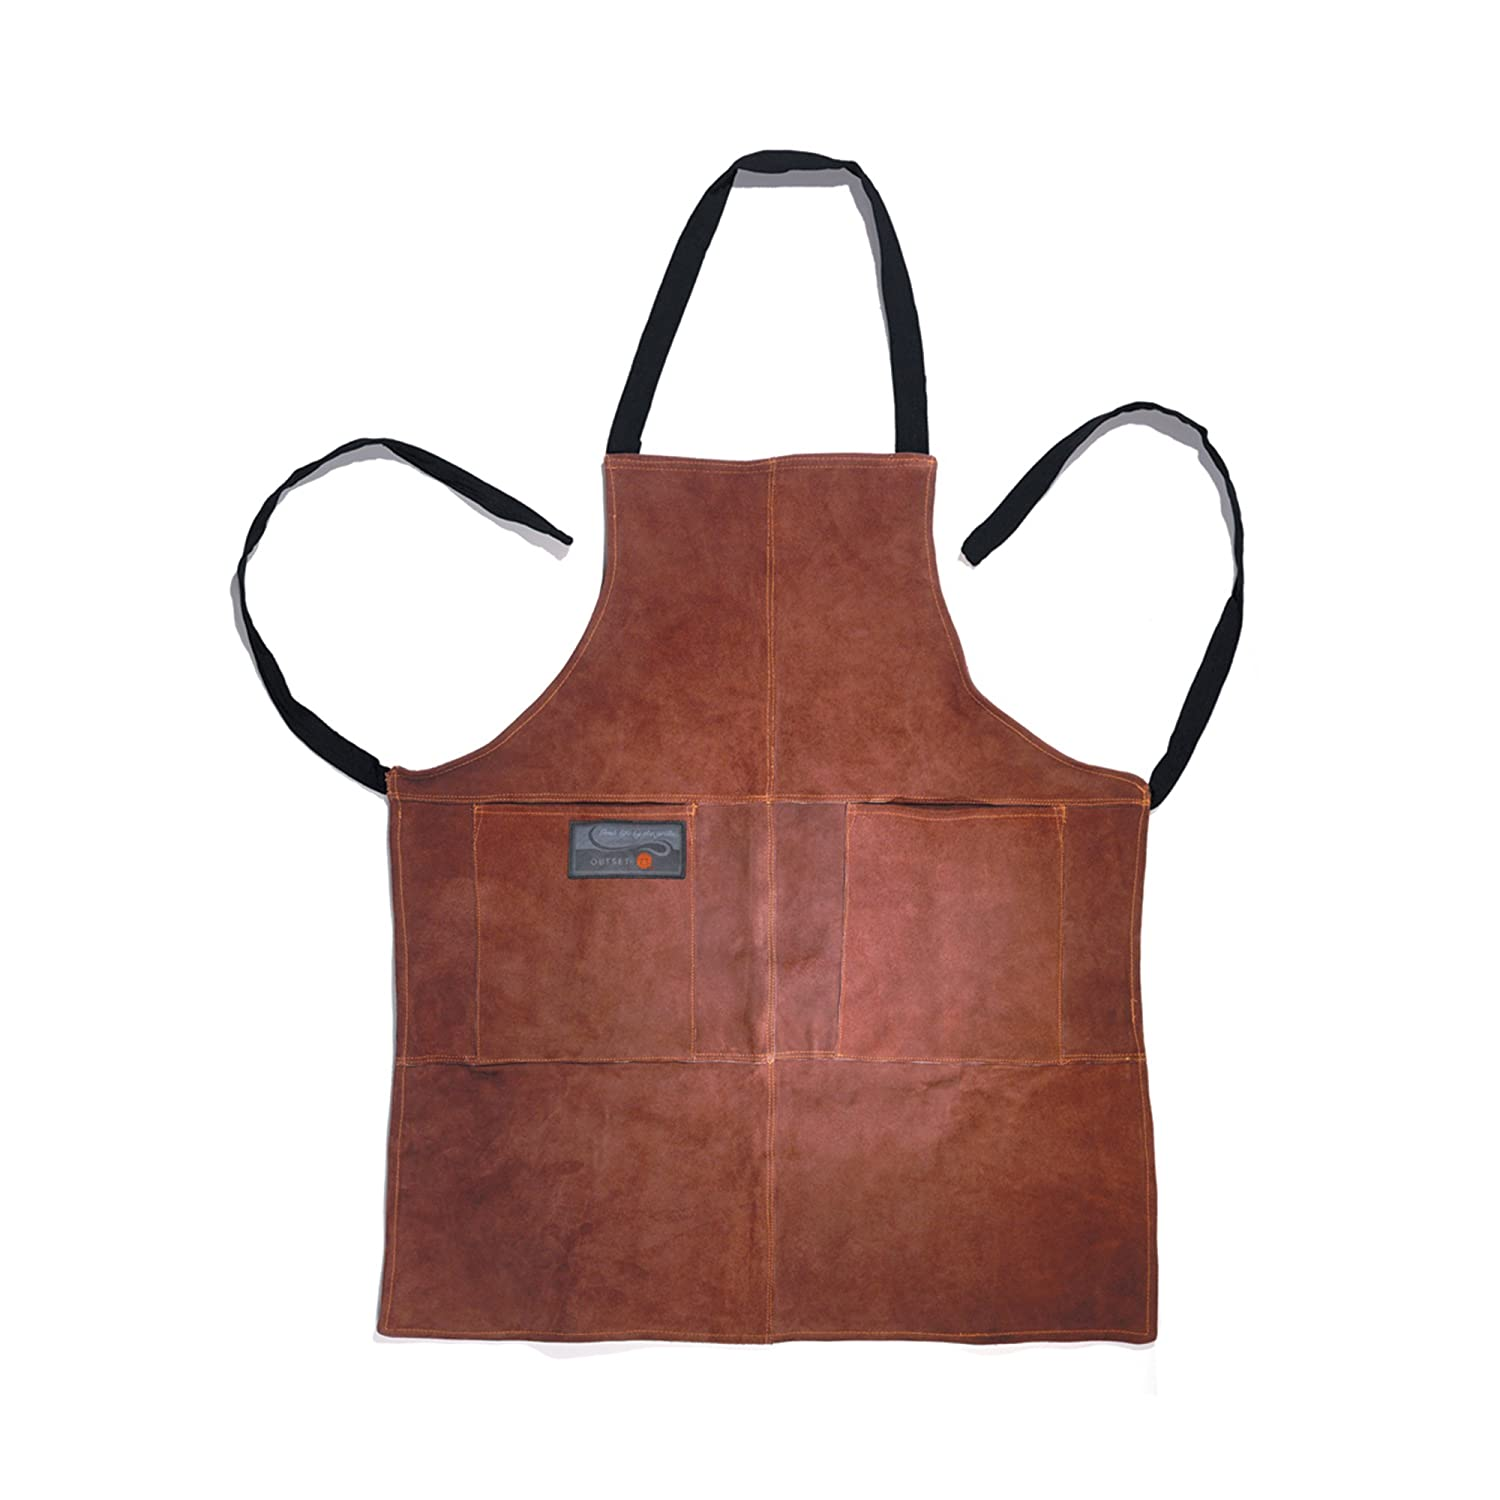 Outset Leather BBQ Grill Bib Apron Kitchen Cooking Barbeque Chef NEW F240